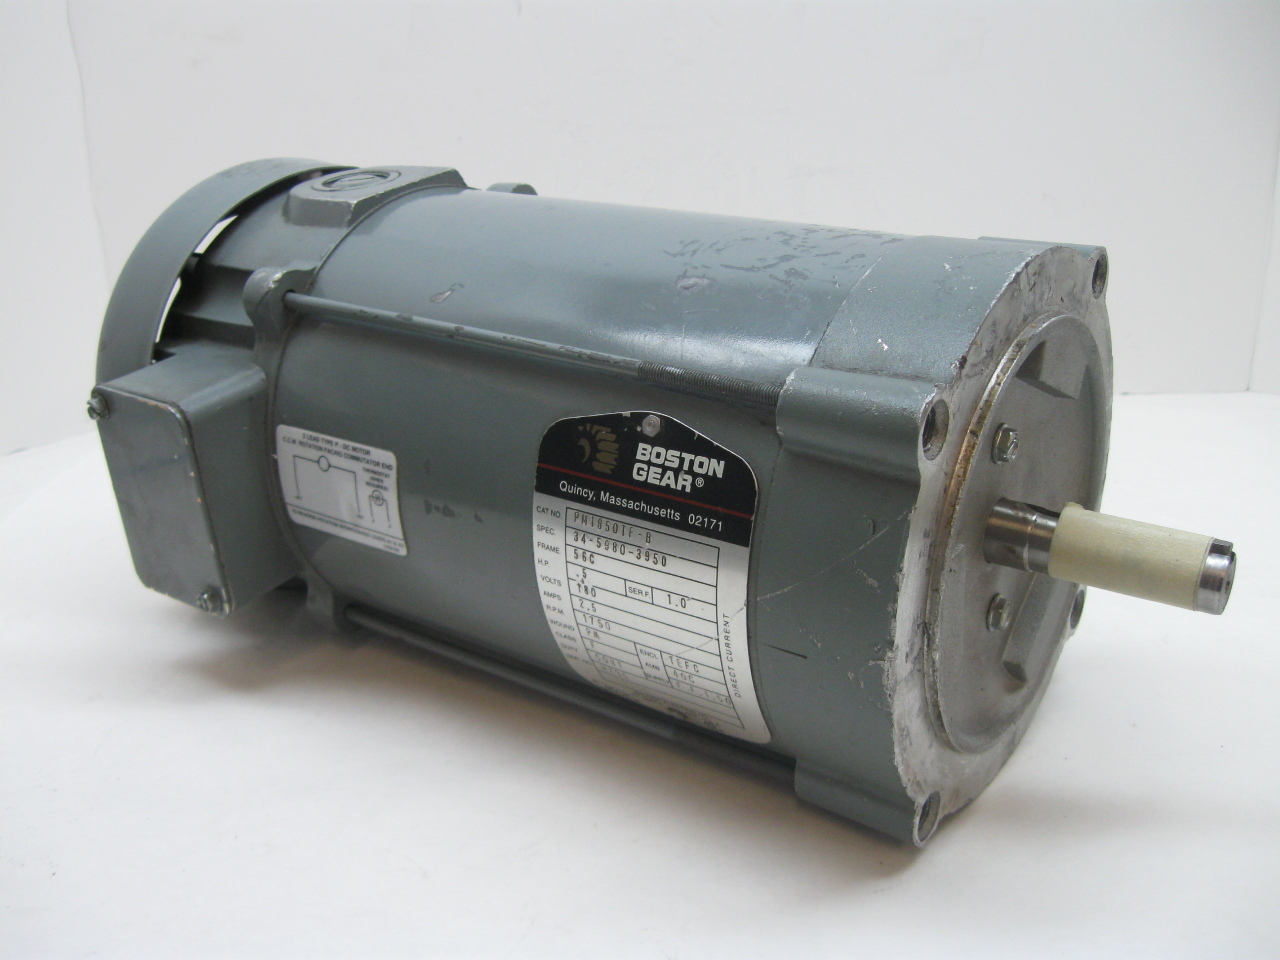 Boston Gear Pm1850tf B Dc Motor Ebay